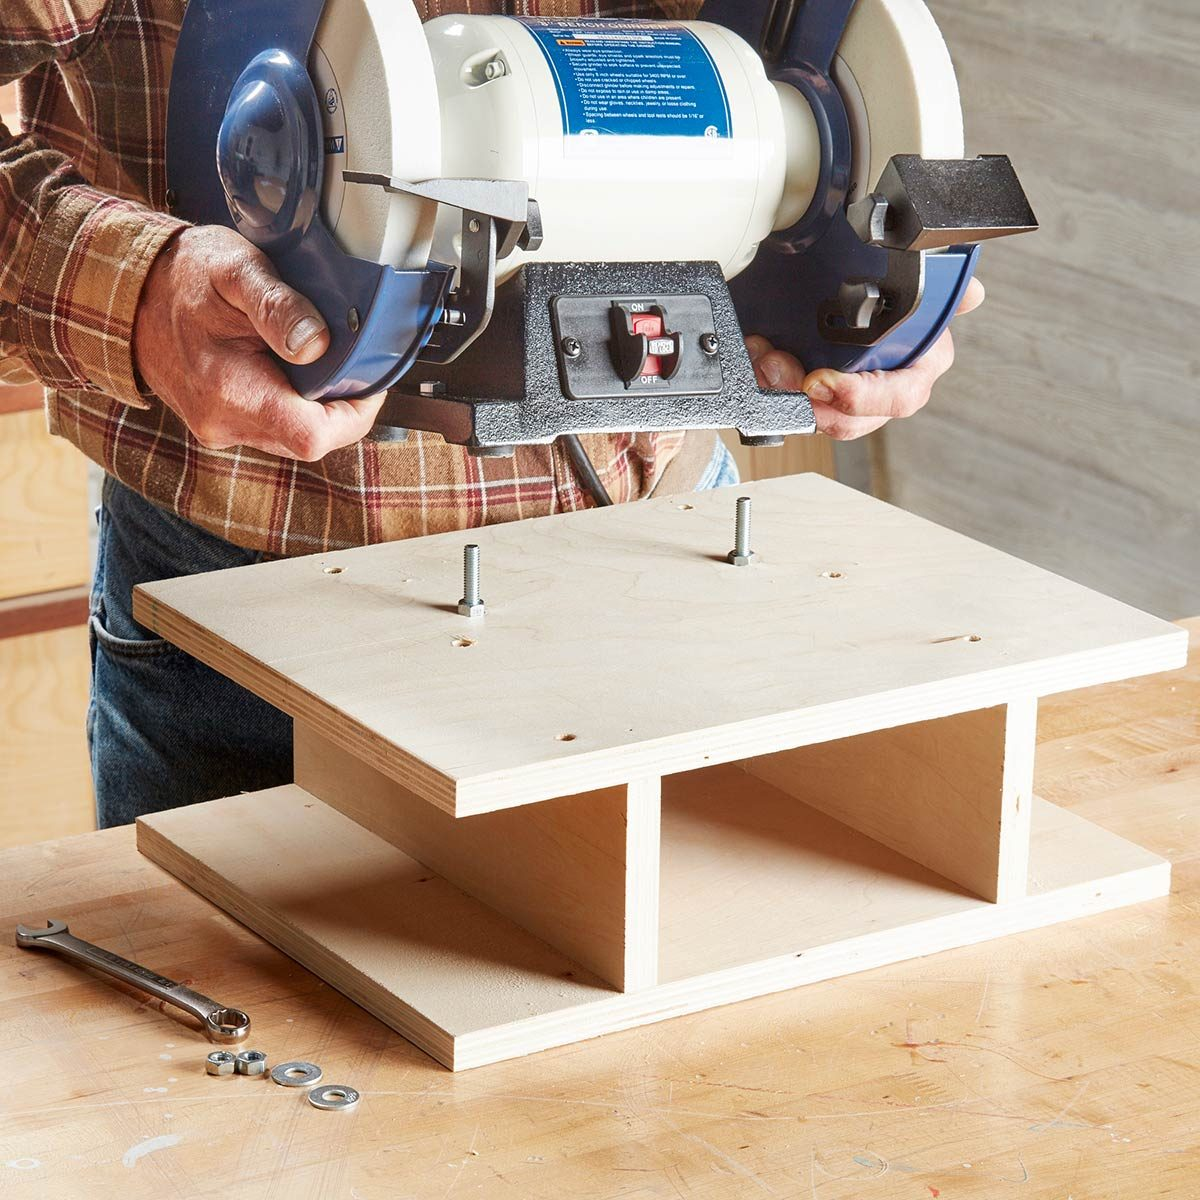 Pleasing Bench Grinder Basics You Need To Know The Family Handyman Alphanode Cool Chair Designs And Ideas Alphanodeonline